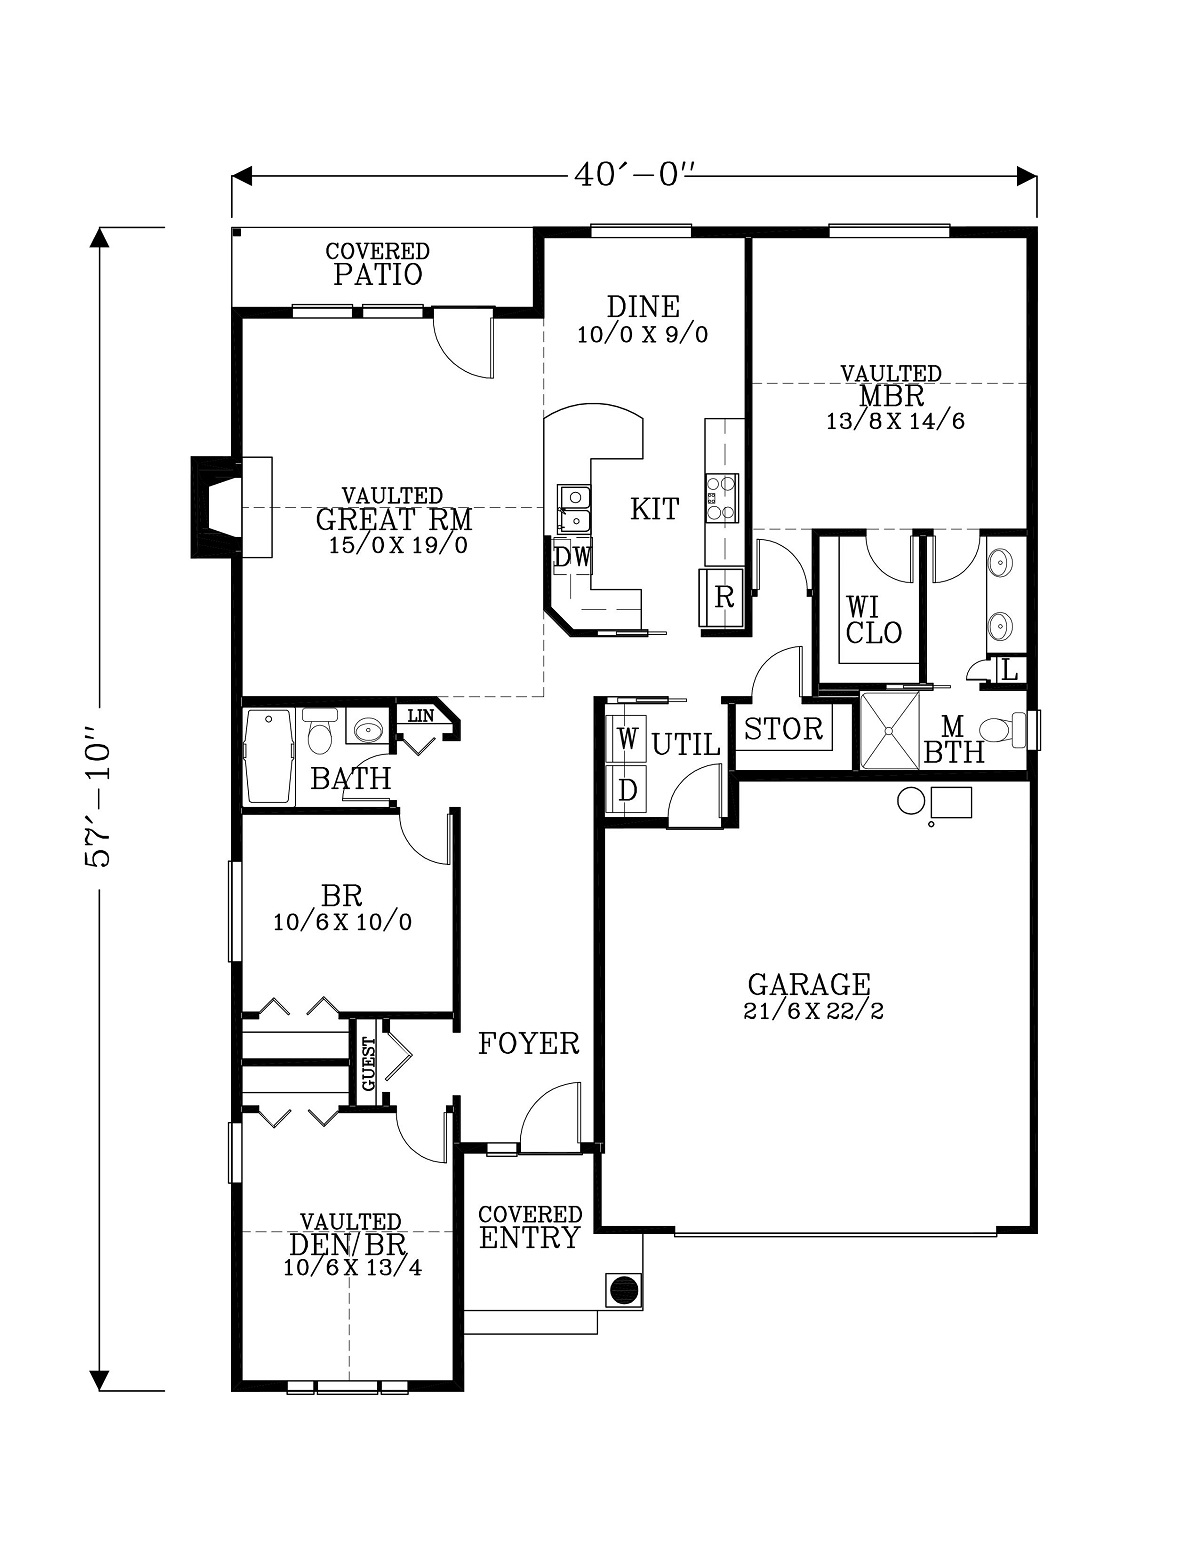 Sunteldesign house plans home plans custom home plans for Parkland plan